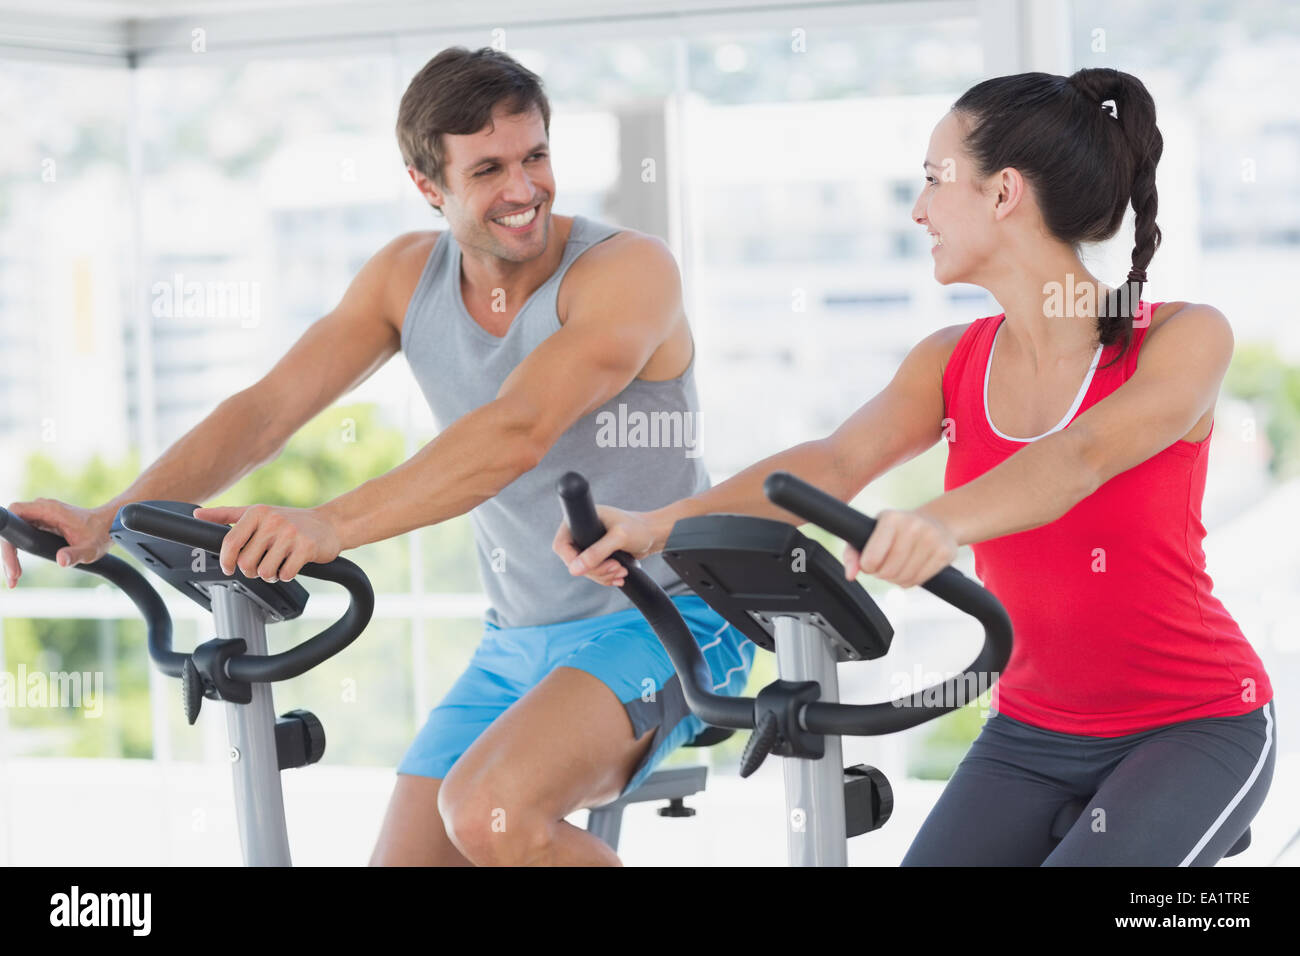 Smiling couple working out at spinning class - Stock Image